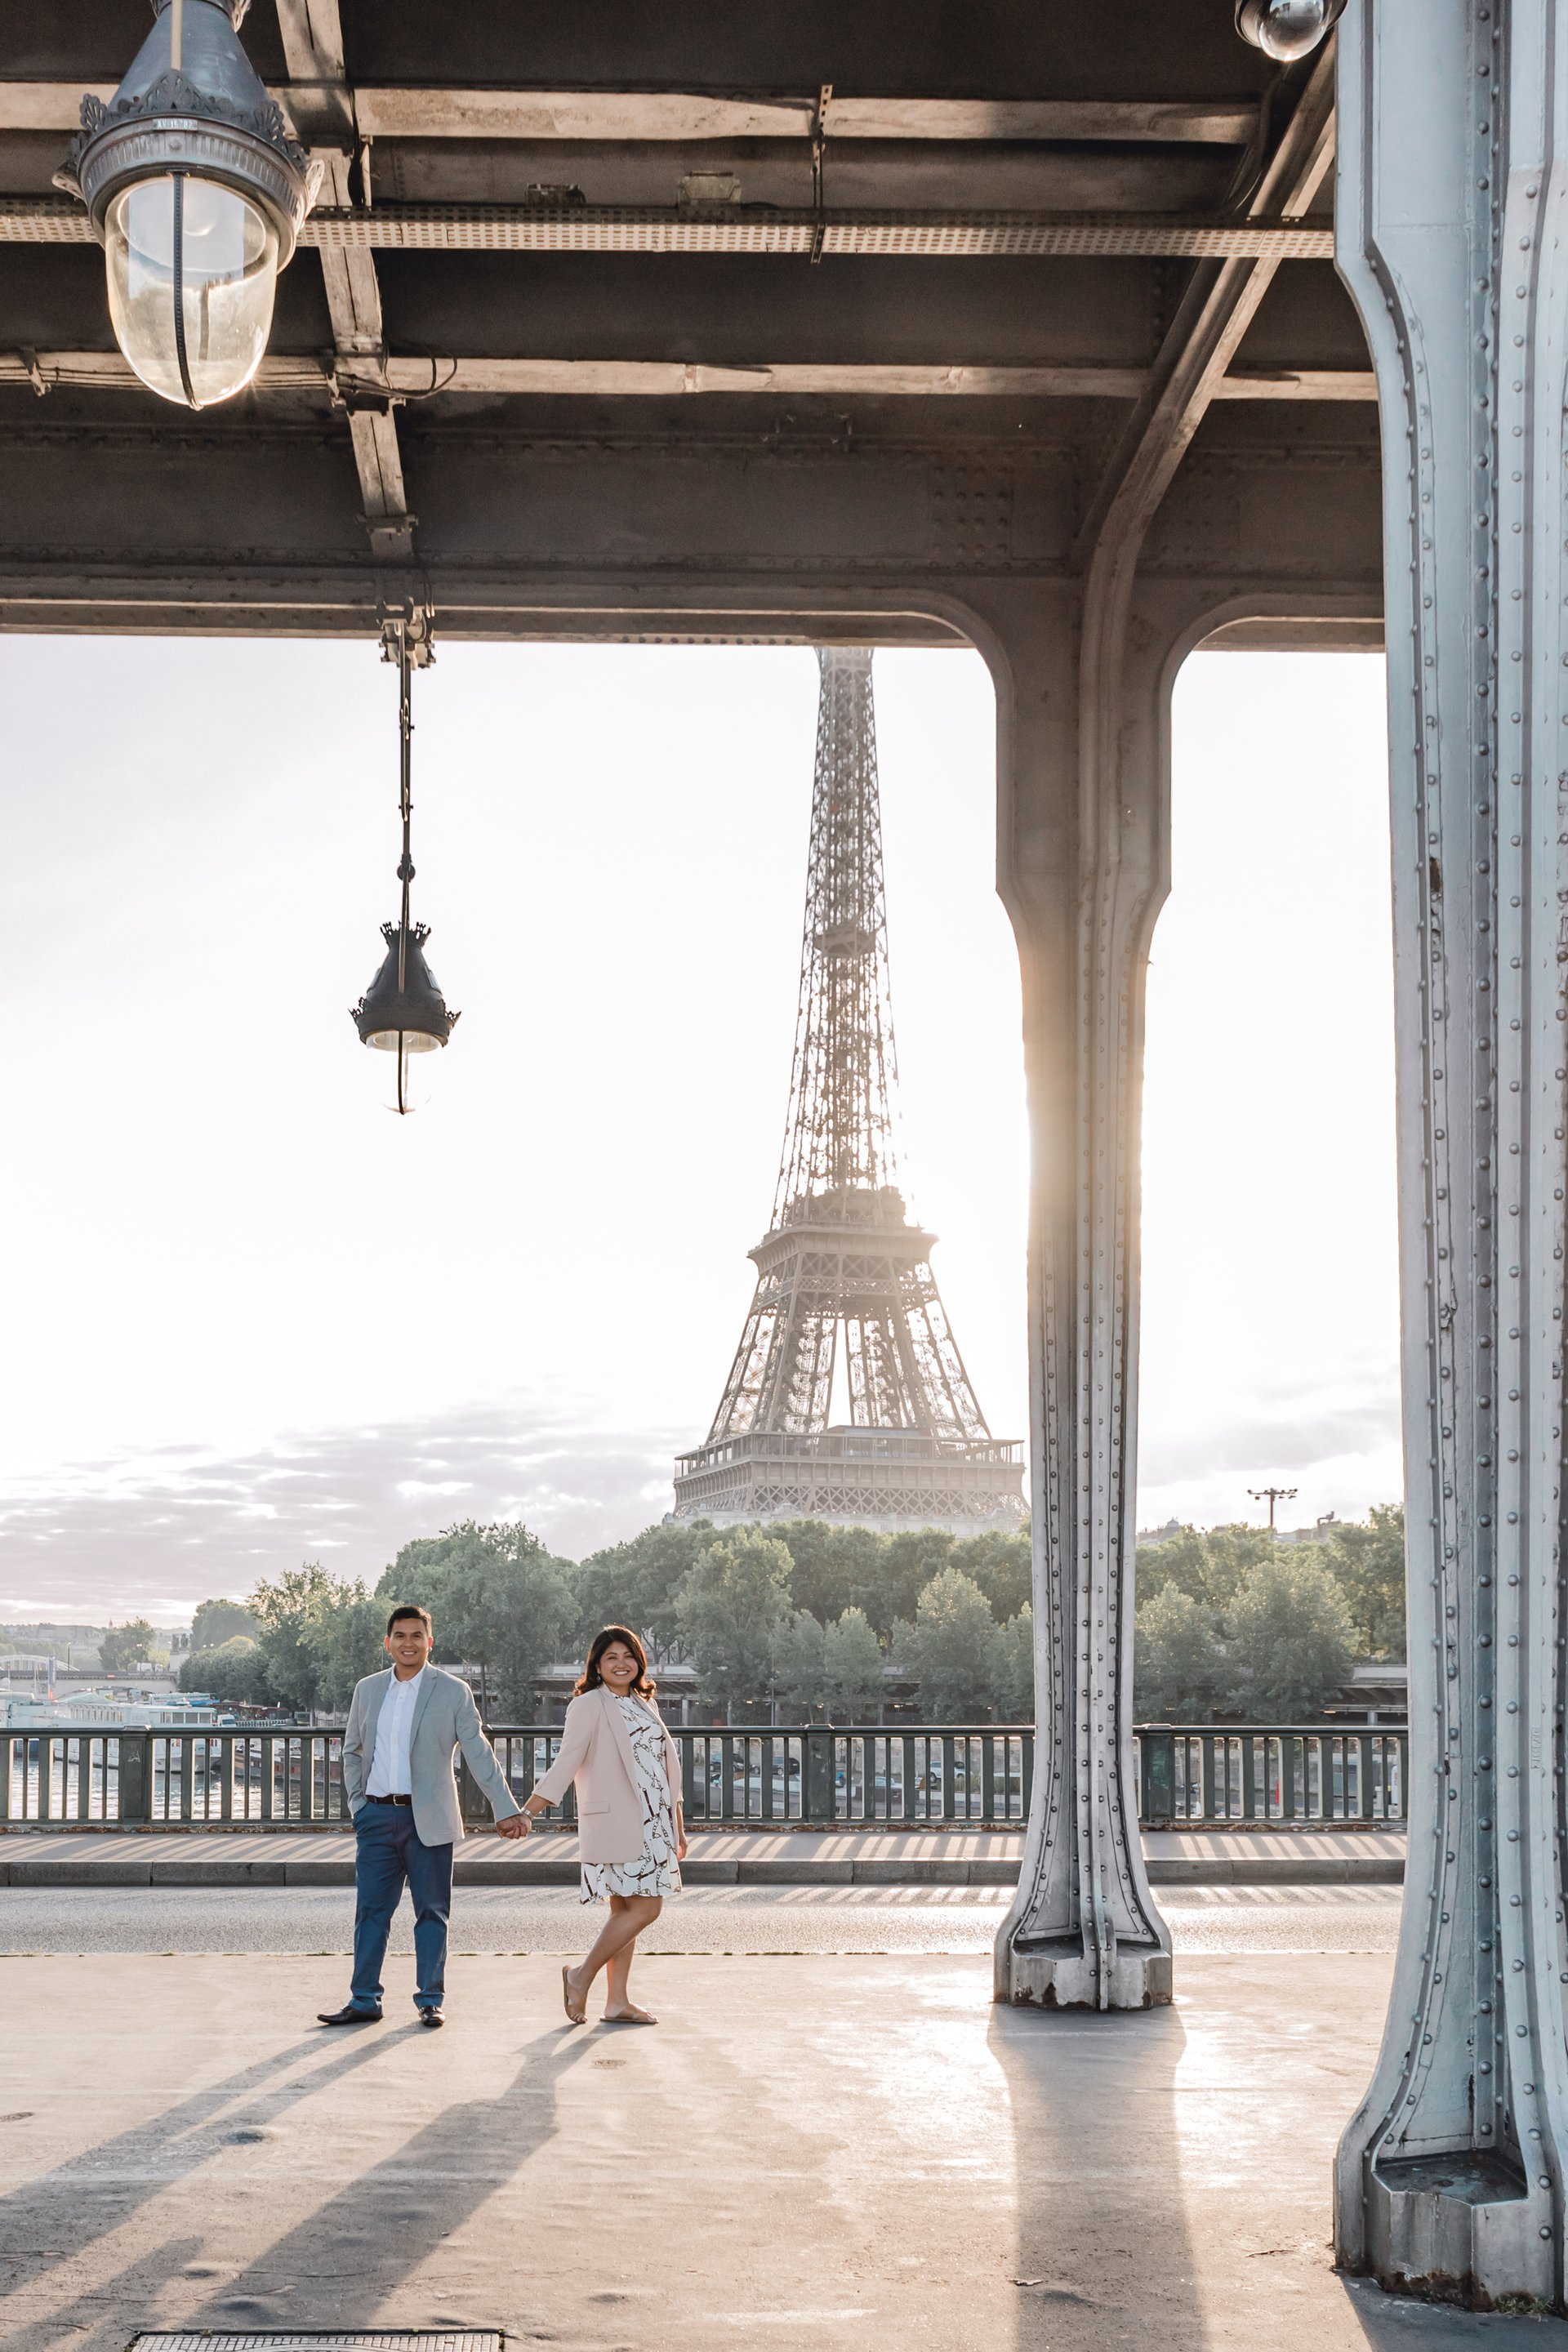 Paris-France-travel-story-Flytographer-4